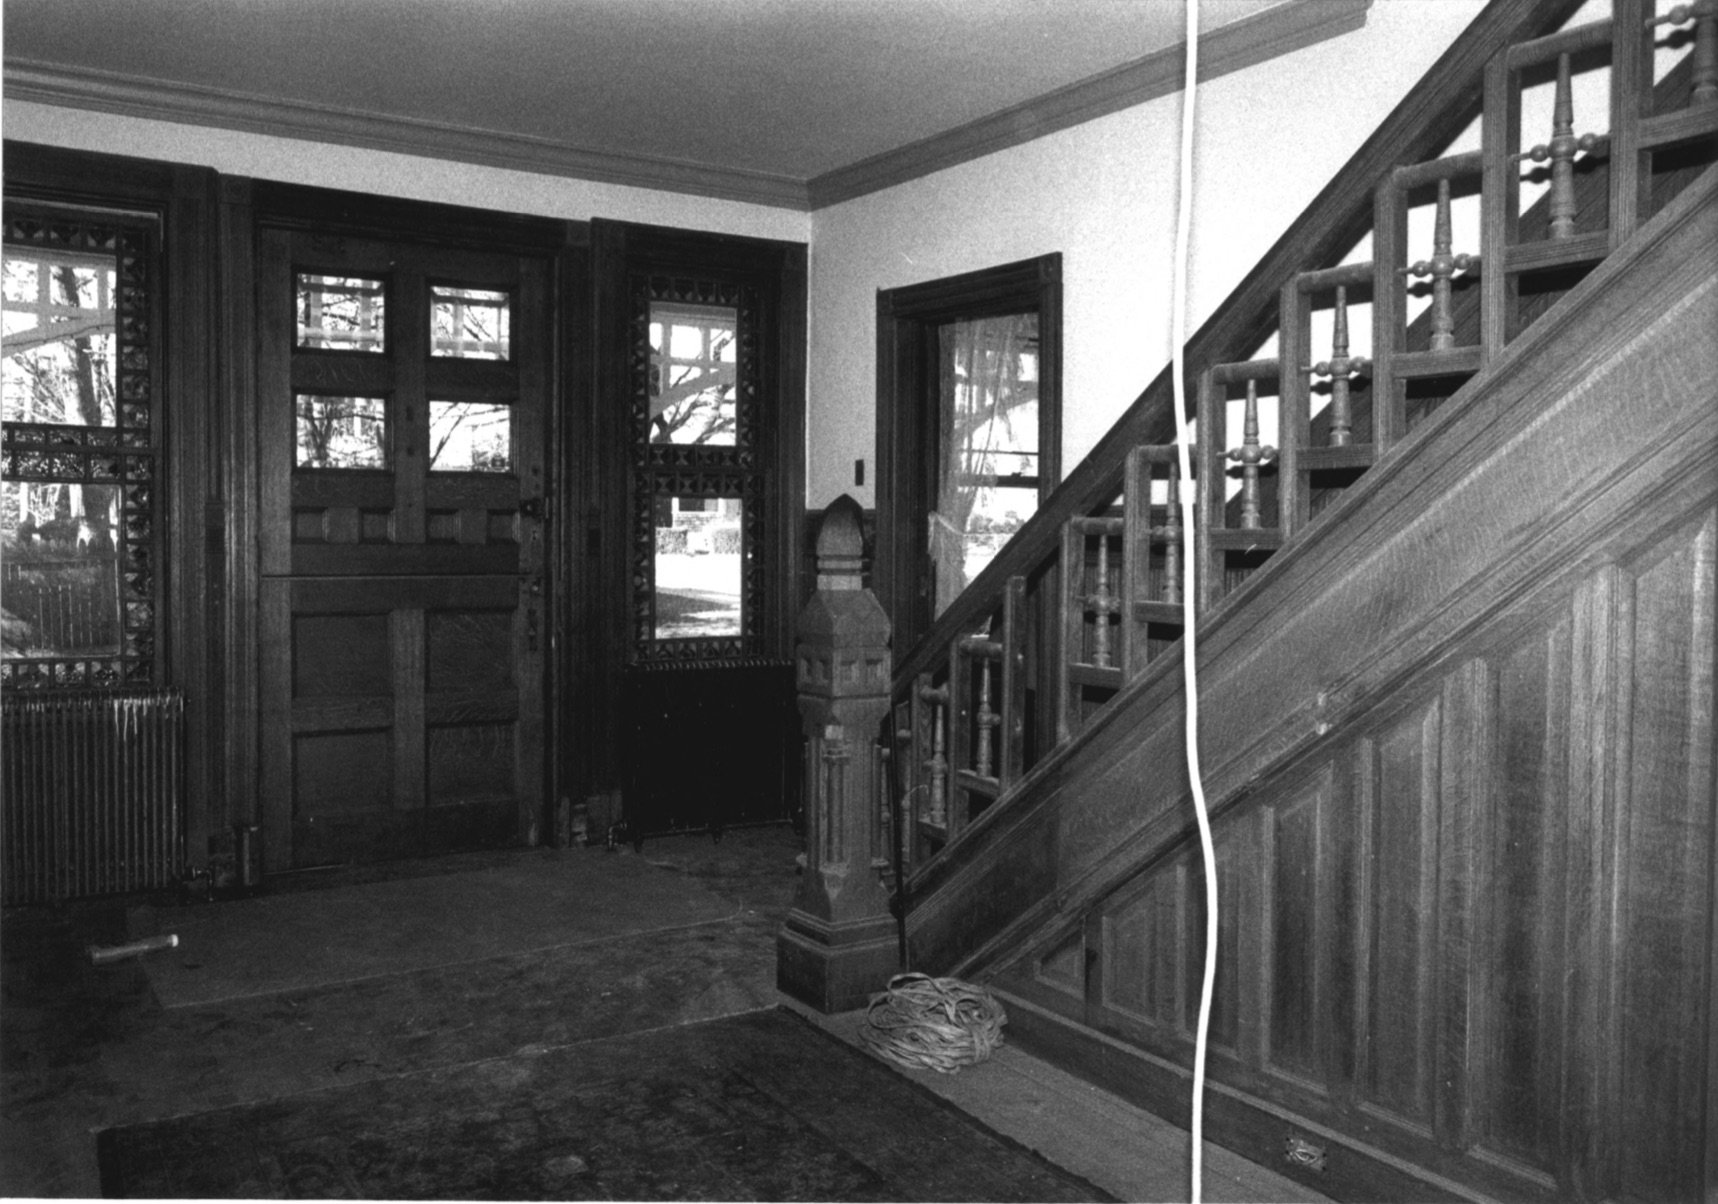 Pike House Foyer, with Ornate Windows Visible